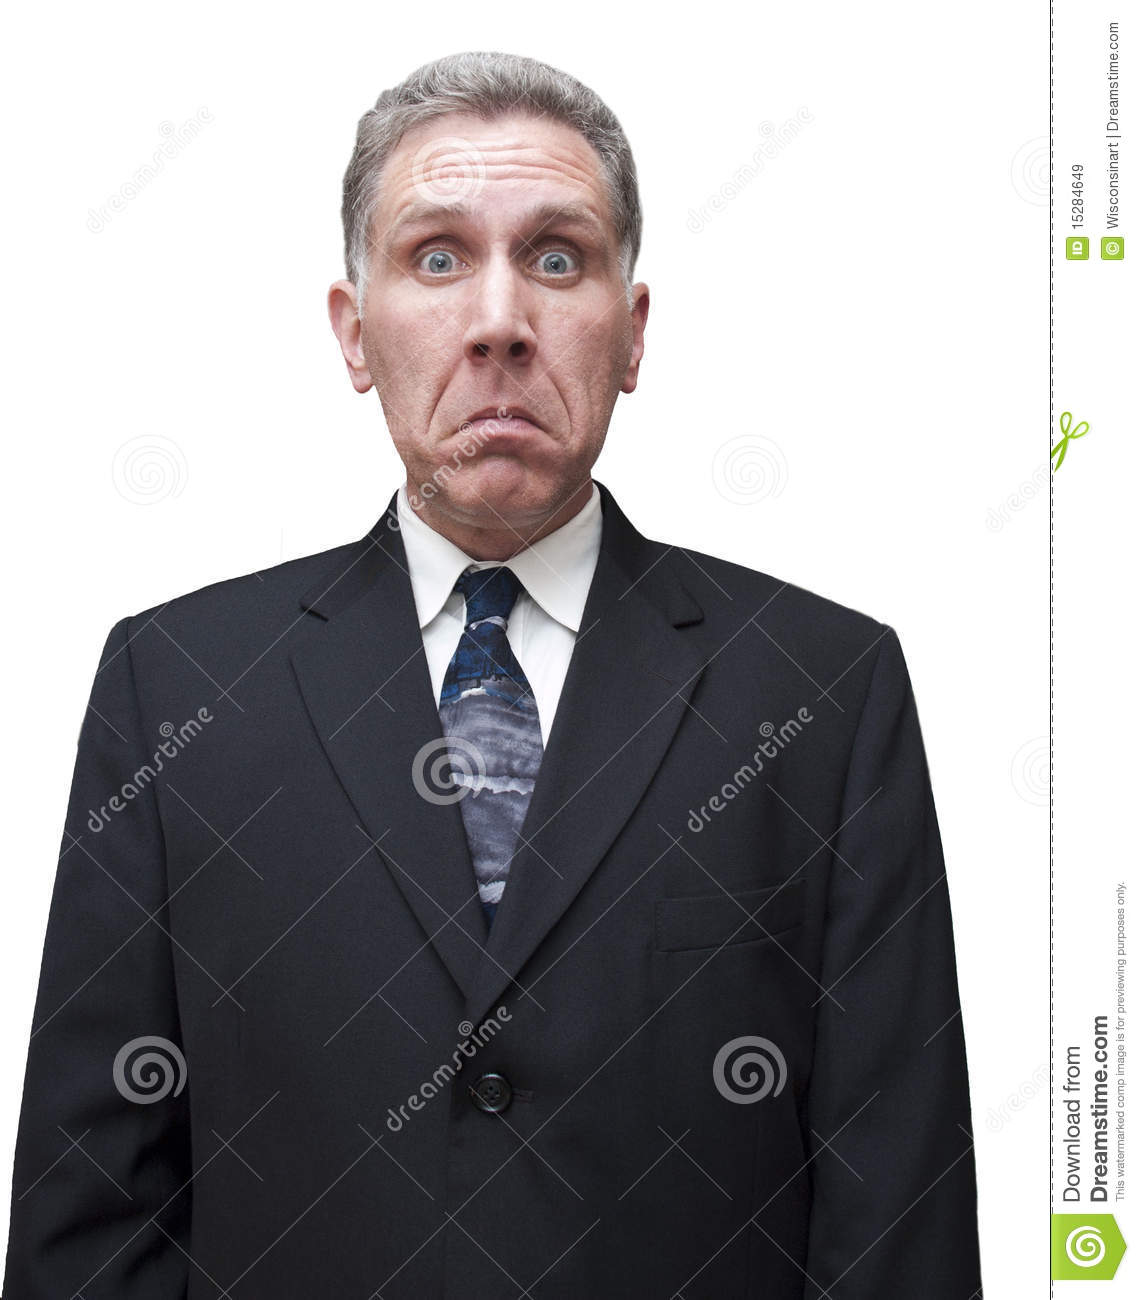 Unhappy Sad Man Male Businessman Isolated